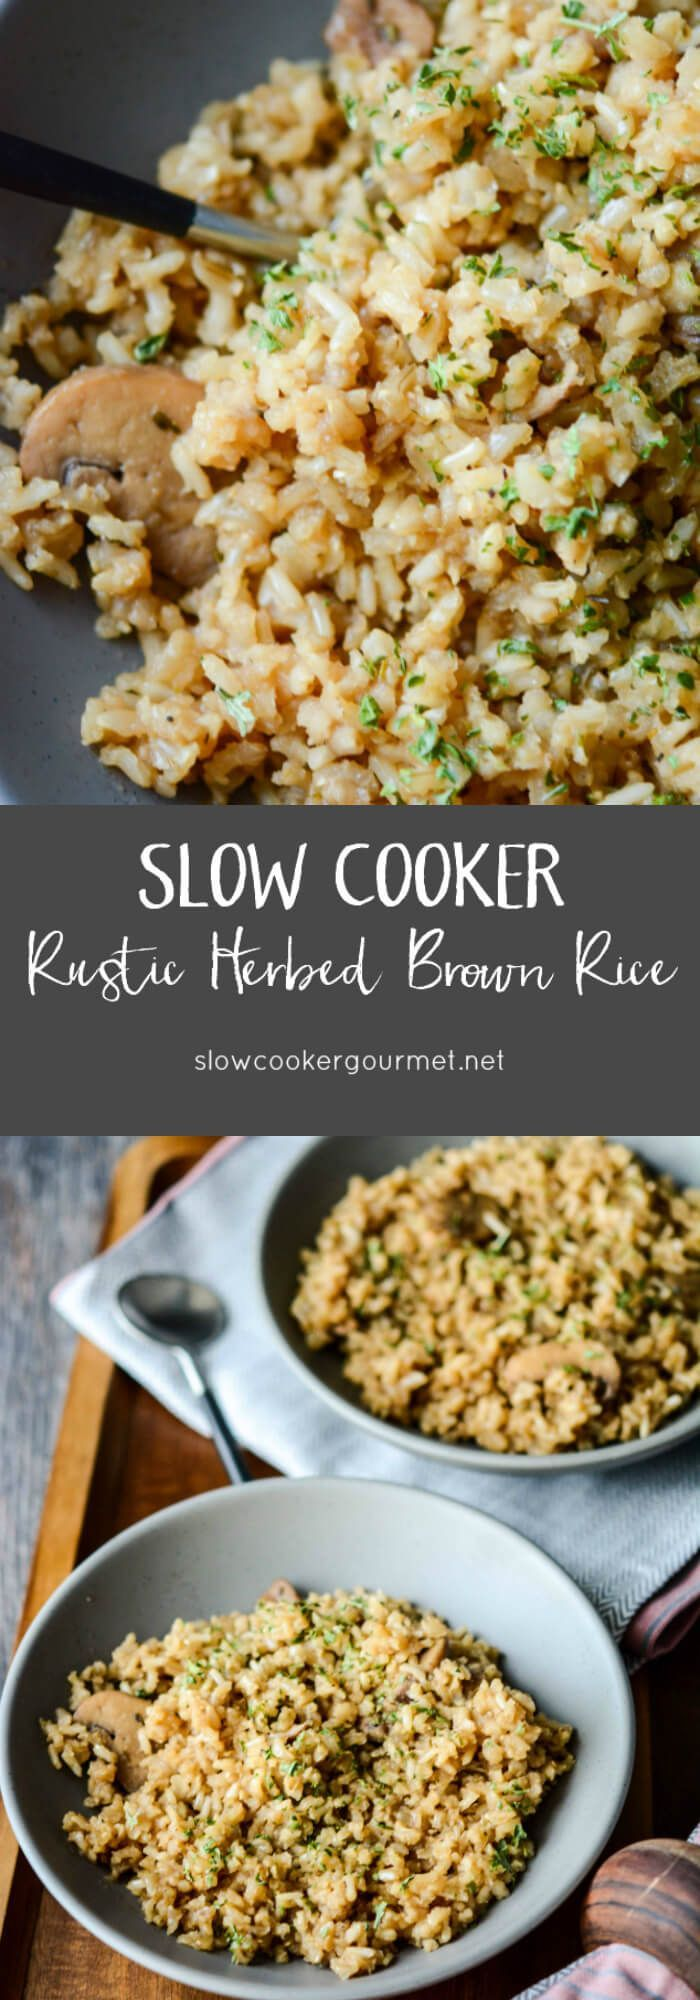 Slow Cooker Rustic Herbed Rice INGREDIENTS 2 cups medium to long grain brown rice 2 tablespoons butter 8 oz frozen sliced mushrooms (or fresh if preferred) 4 cups beef broth ½ teaspoon dried thyme ½ teaspoon dried oregano salt and pepper to taste Dried or fresh parsley for garnish, optional